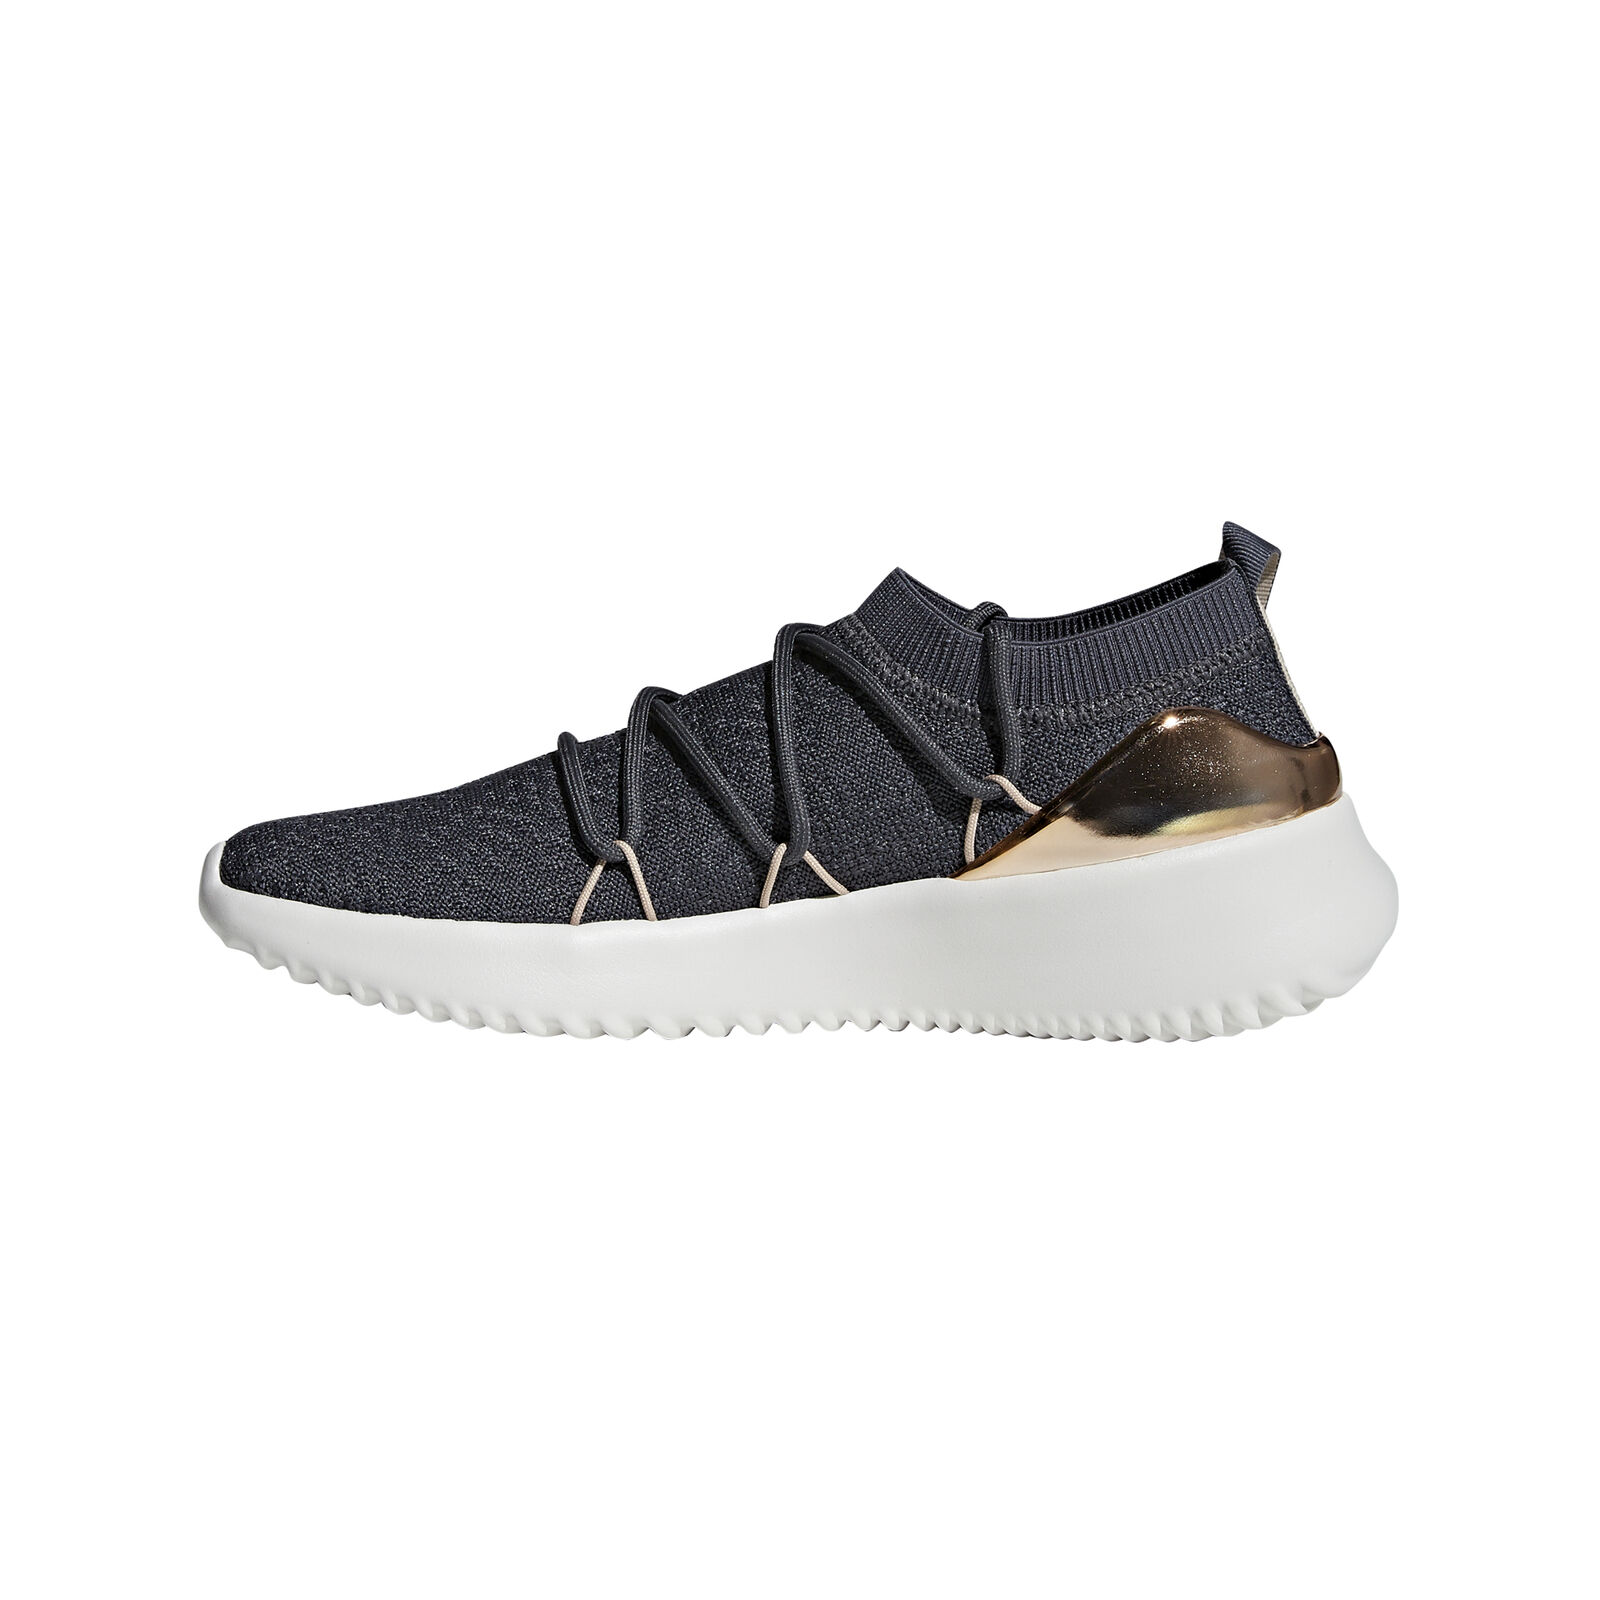 Adidas Ladies Ultimamotion Casual shoes Trainers Trainers Sneakers Trainers